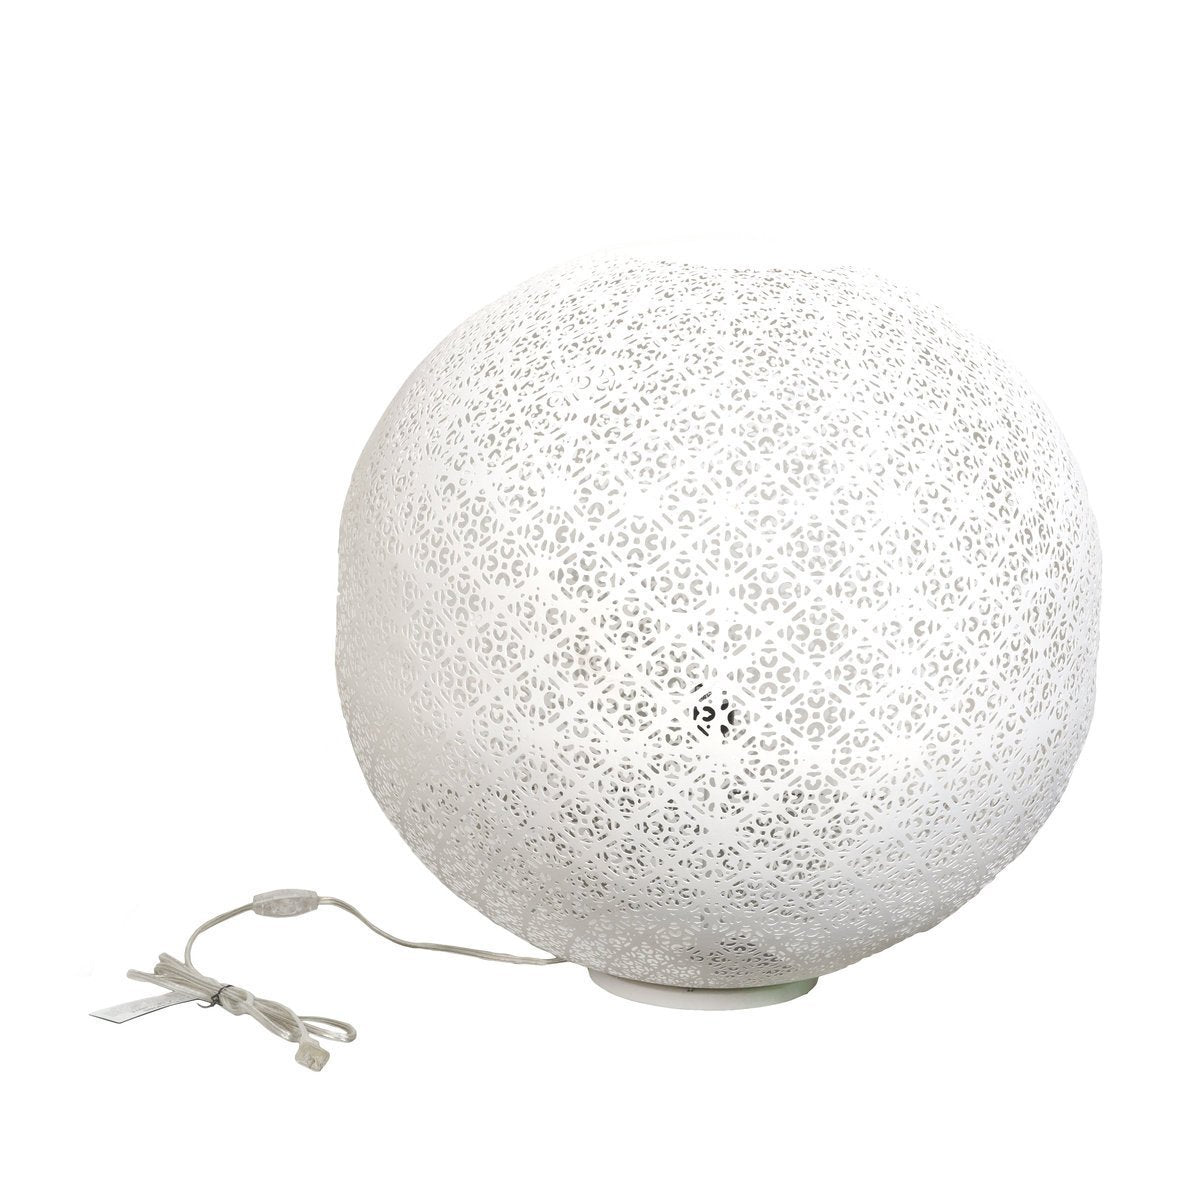 Luna Regular Globe Table Lamp | Calgary's Furniture Store